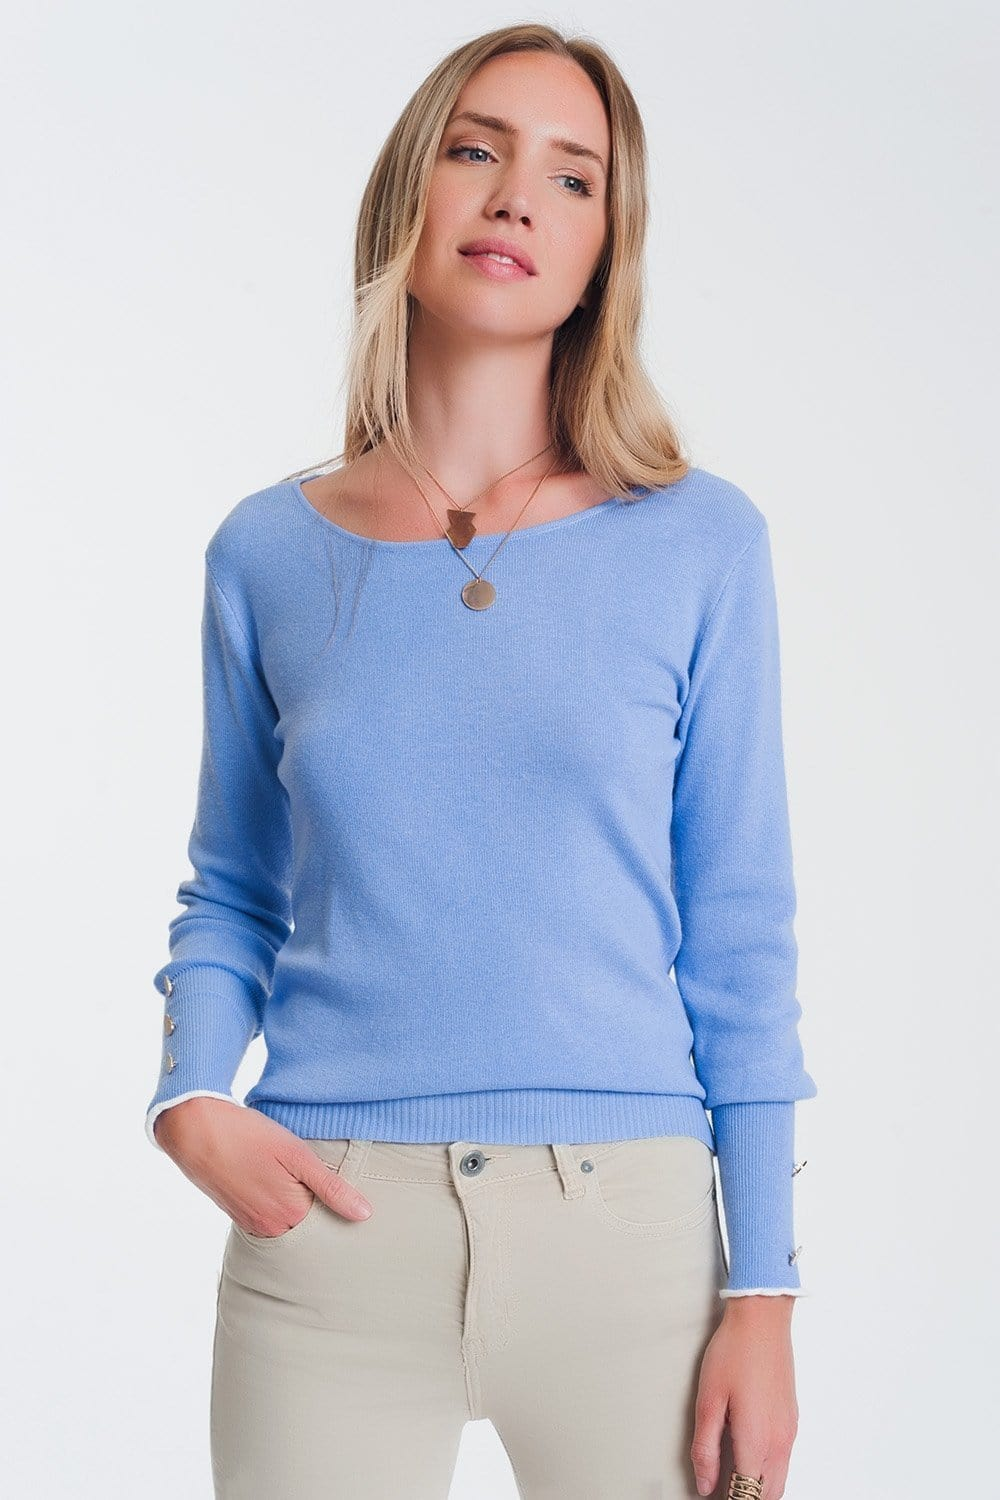 Q2 crew neck sweater with button detail in blue